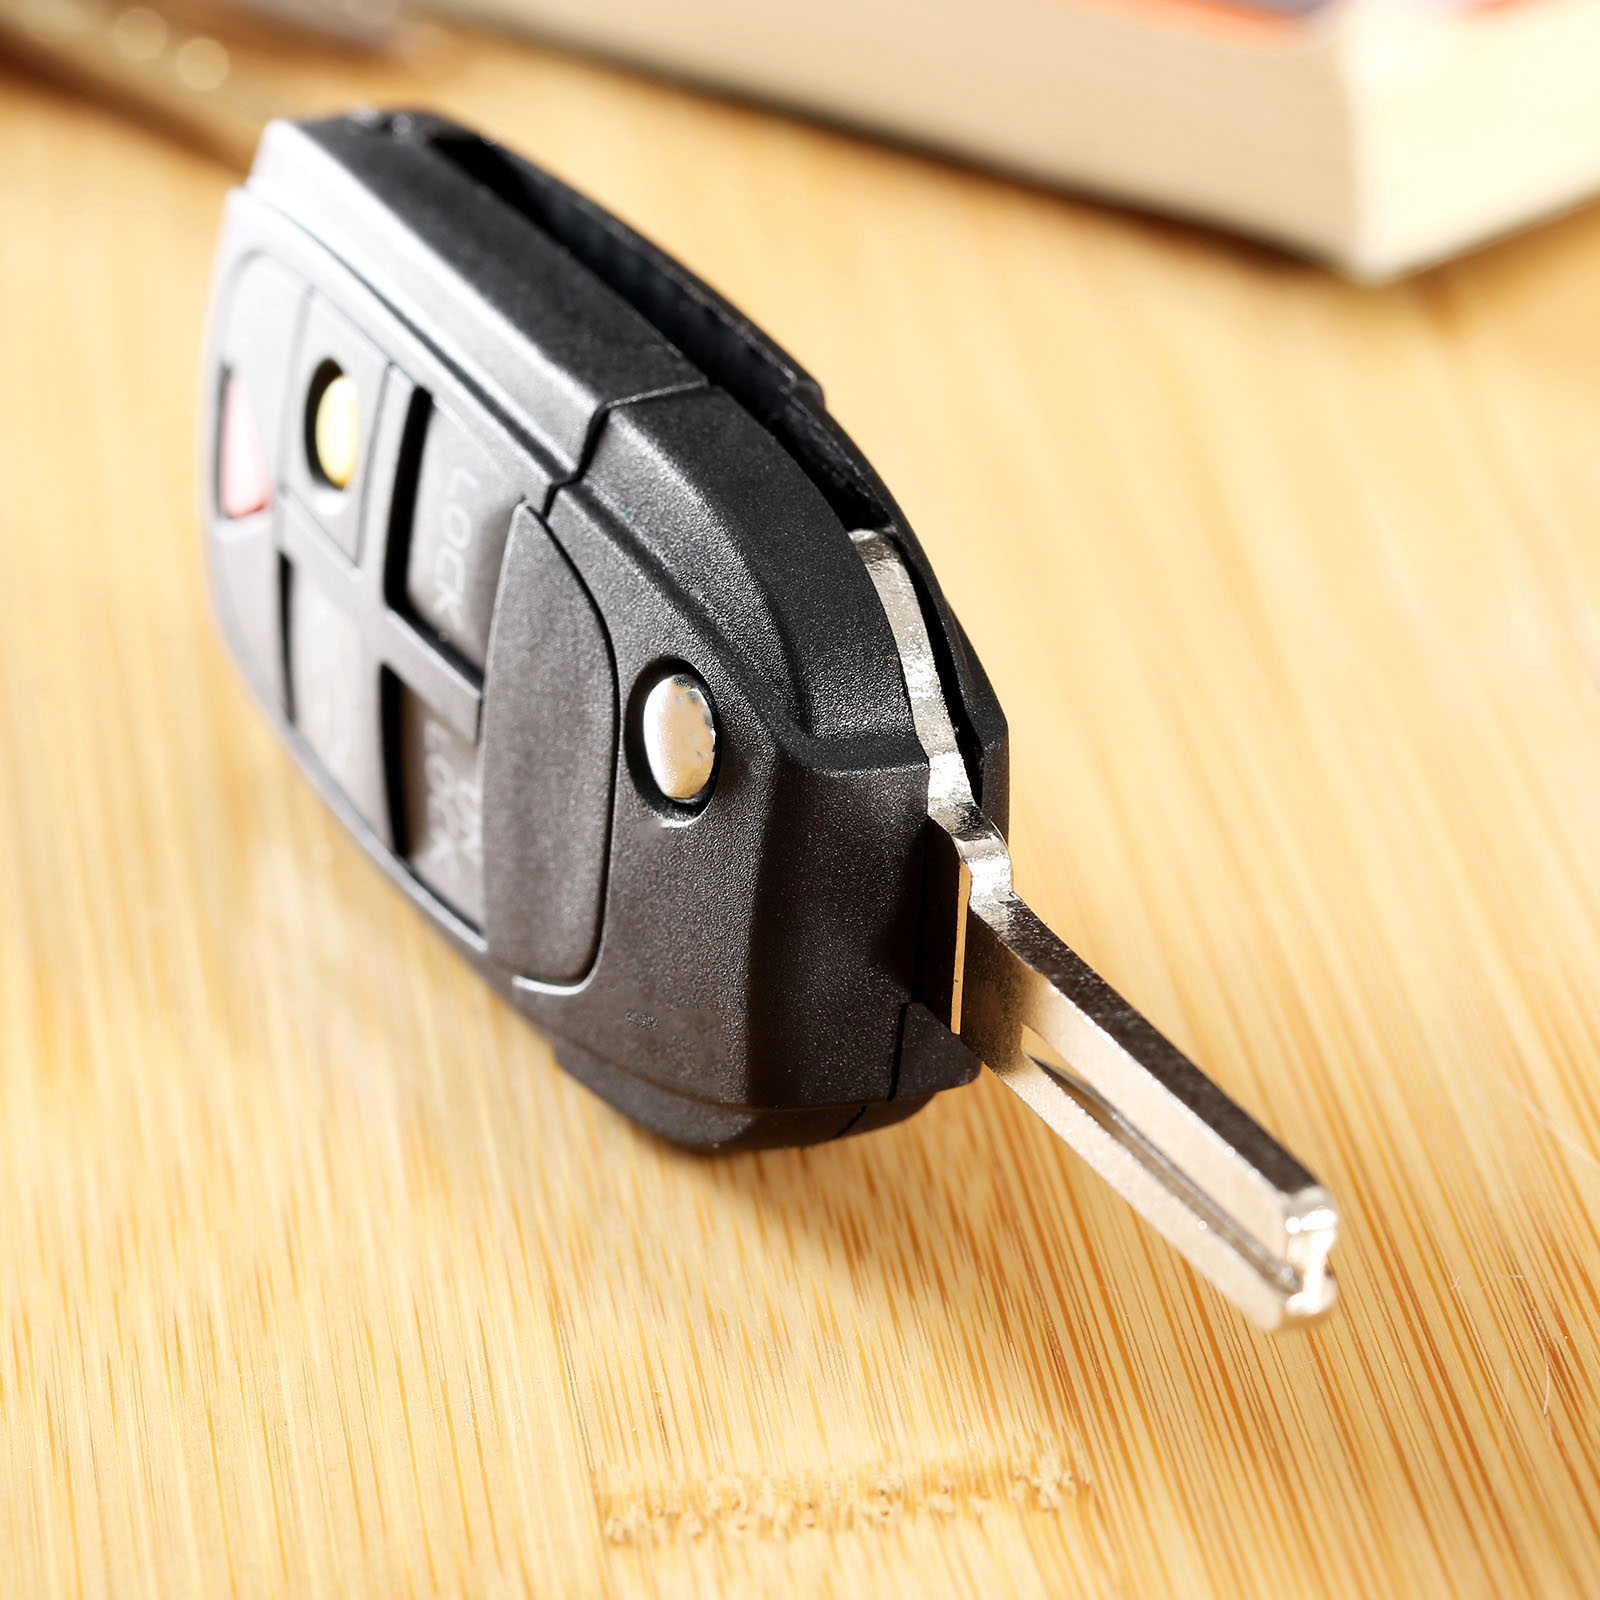 5 Buttons Auto Car Replacement Shell Part Folding Flip Key Shell For VOLVO S60 S80 V70 XC70 XC90 Uncut Blade Remote Key Case Fob in Key Shell from Automobiles Motorcycles